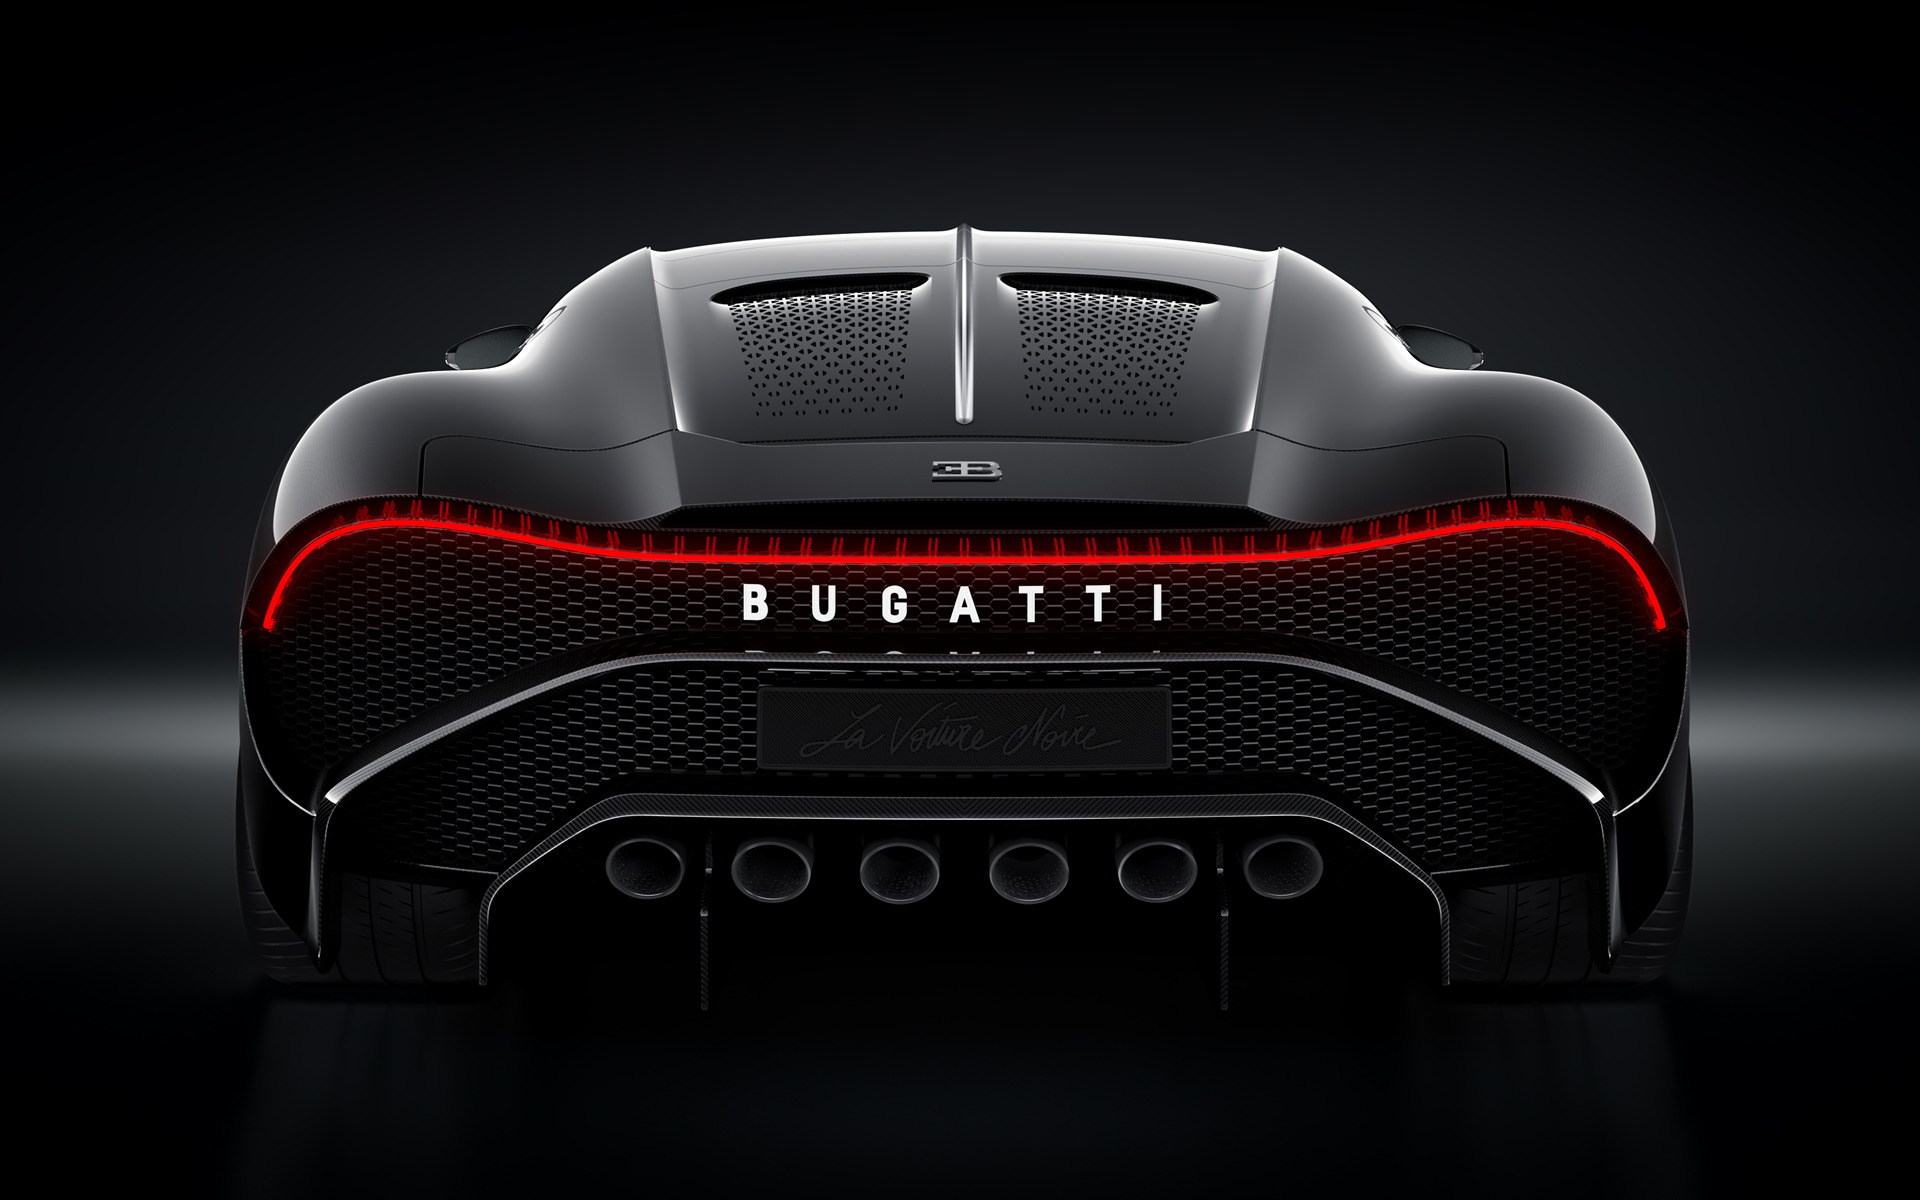 Most Expensive Car In The World >> 2019 Bugatti La Voiture Noire - Wallpapers and HD Images ...